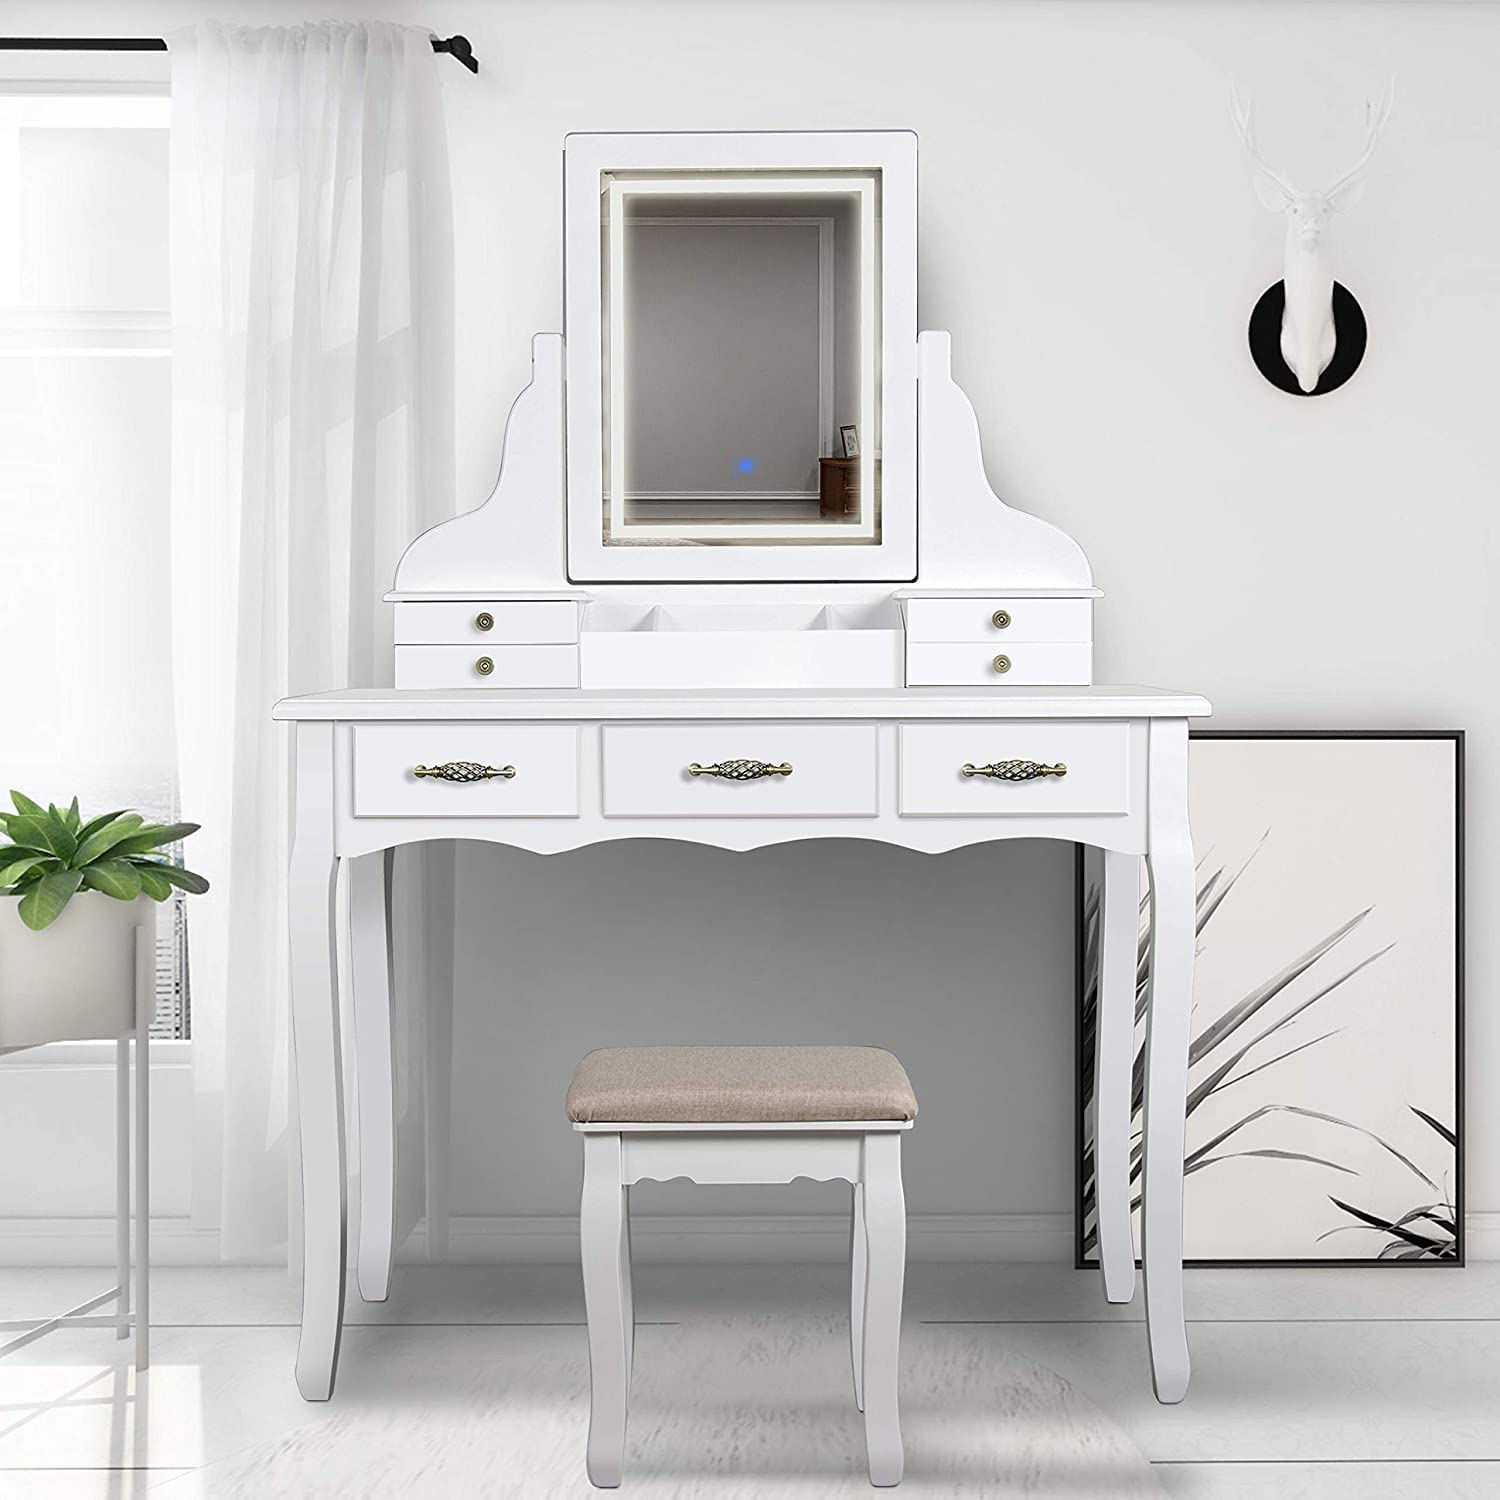 SCYL Color Your Life Vanity Table Set with Lighted LED Mirror,7 Drawers Makeup Dressing Table with Cushioned Stool,Easy Assembly(White)